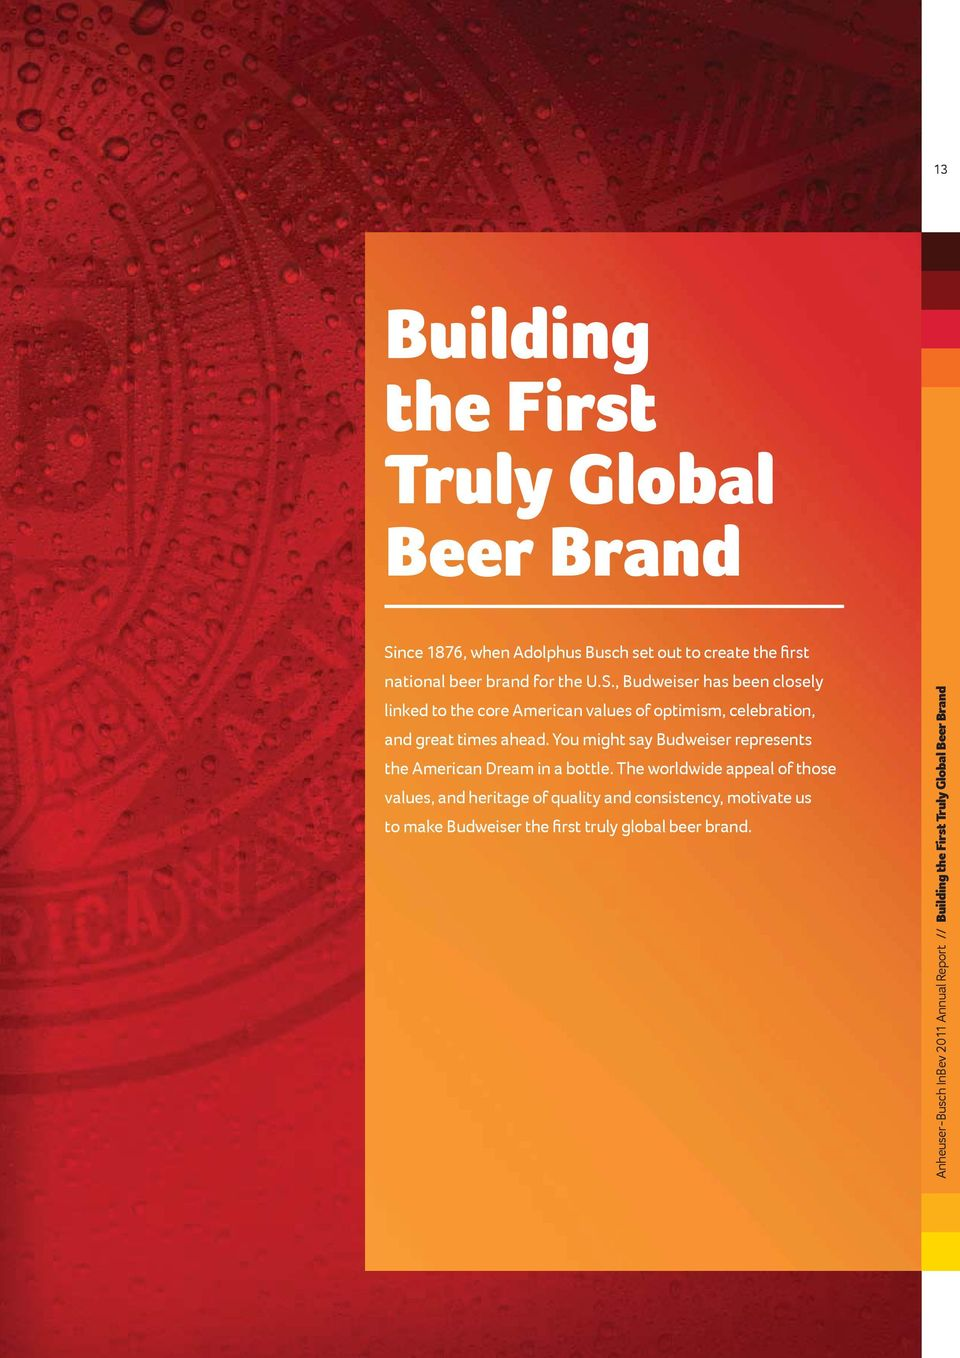 , Budweiser has been closely linked to the core American values of optimism, celebration, and great times ahead.